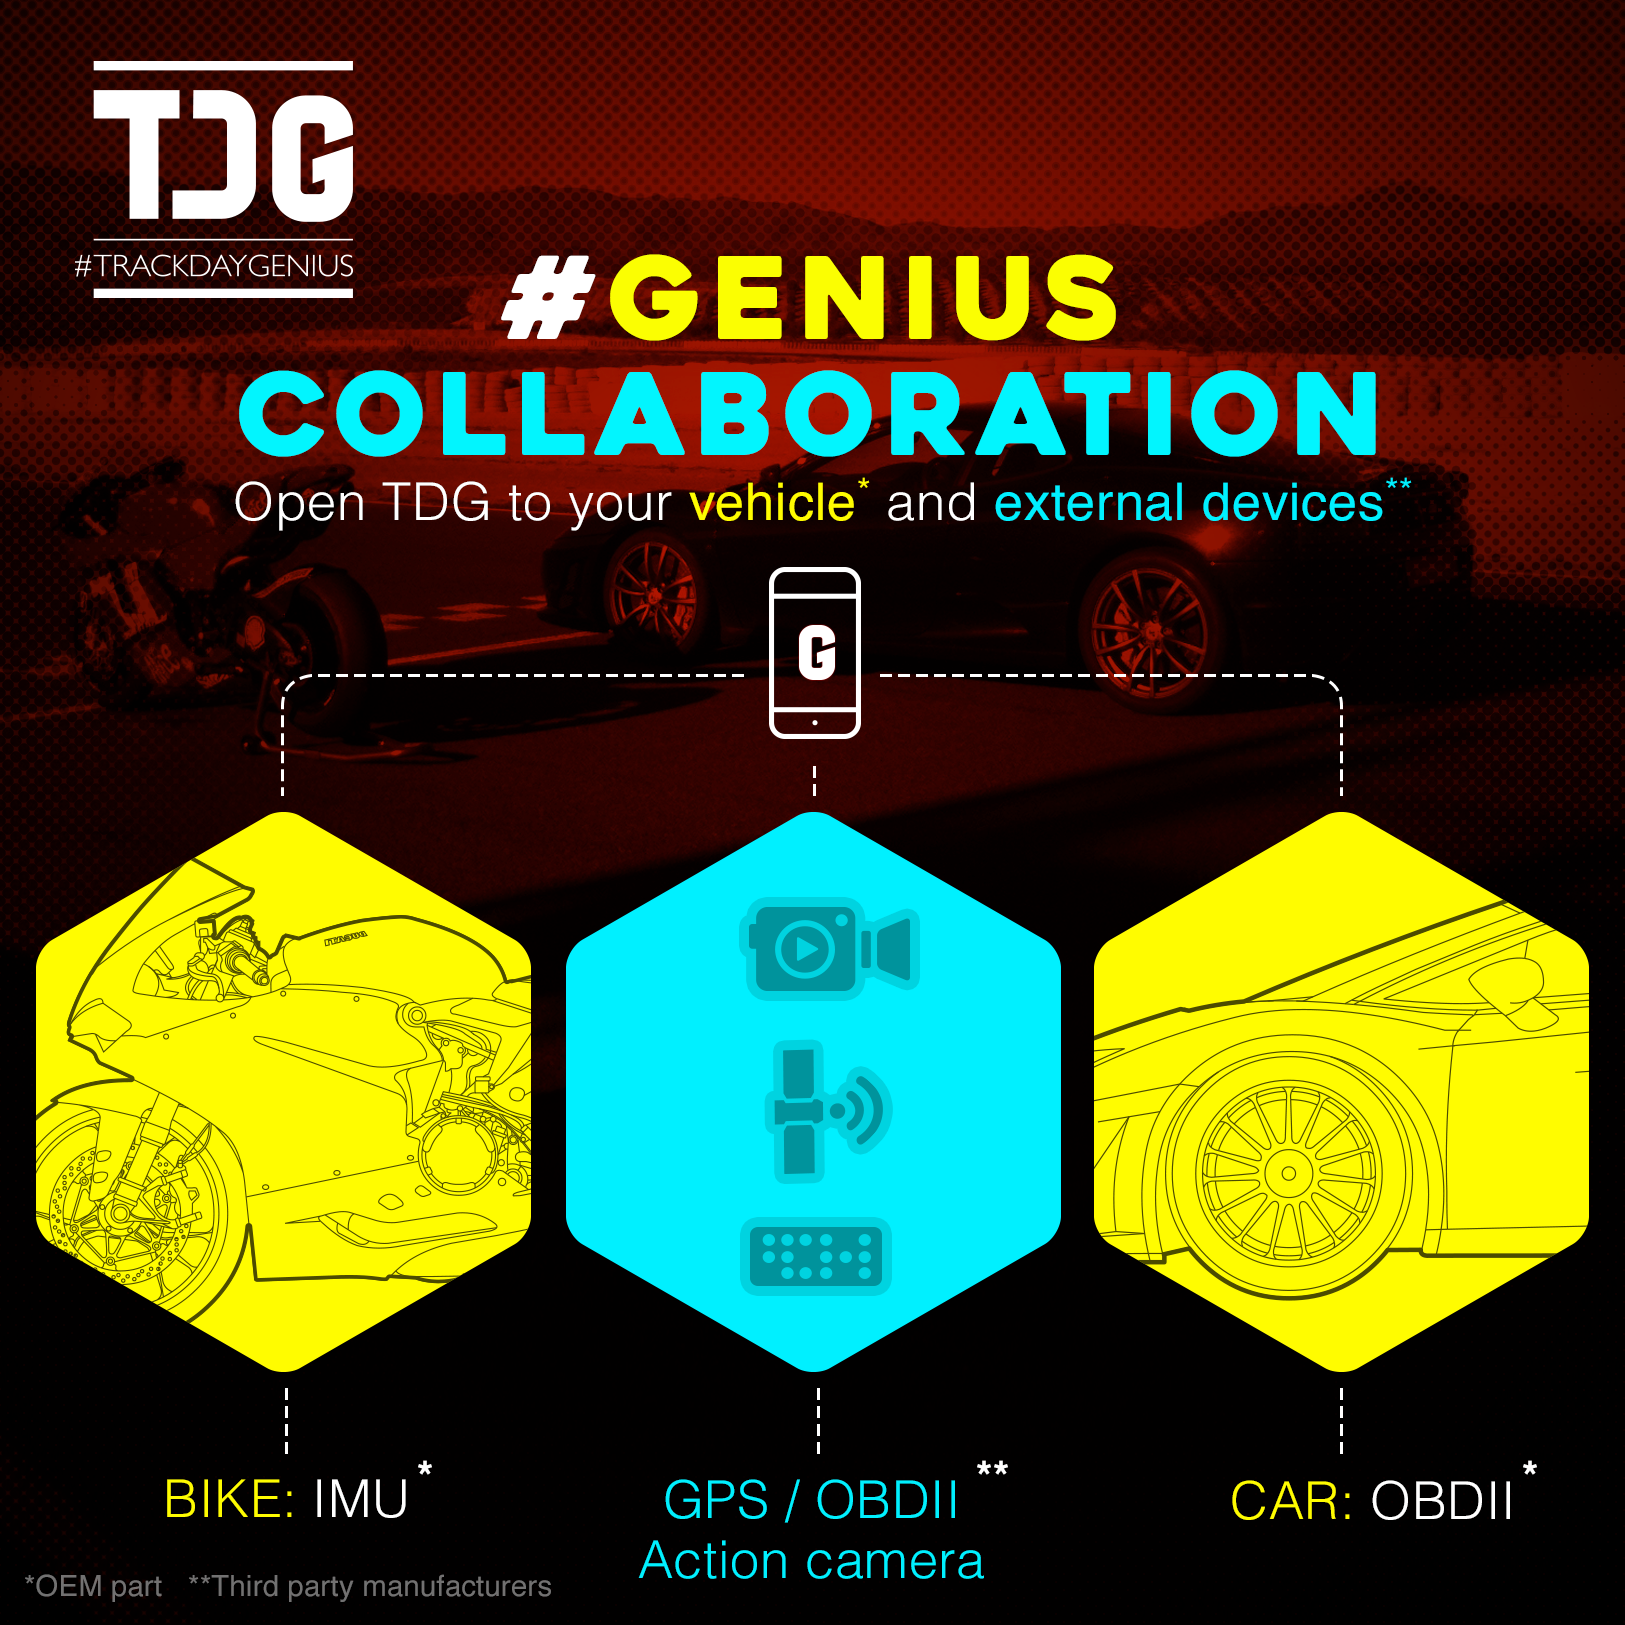 tdg-hashTag-geniusCollaboration-devices-v4a-sq